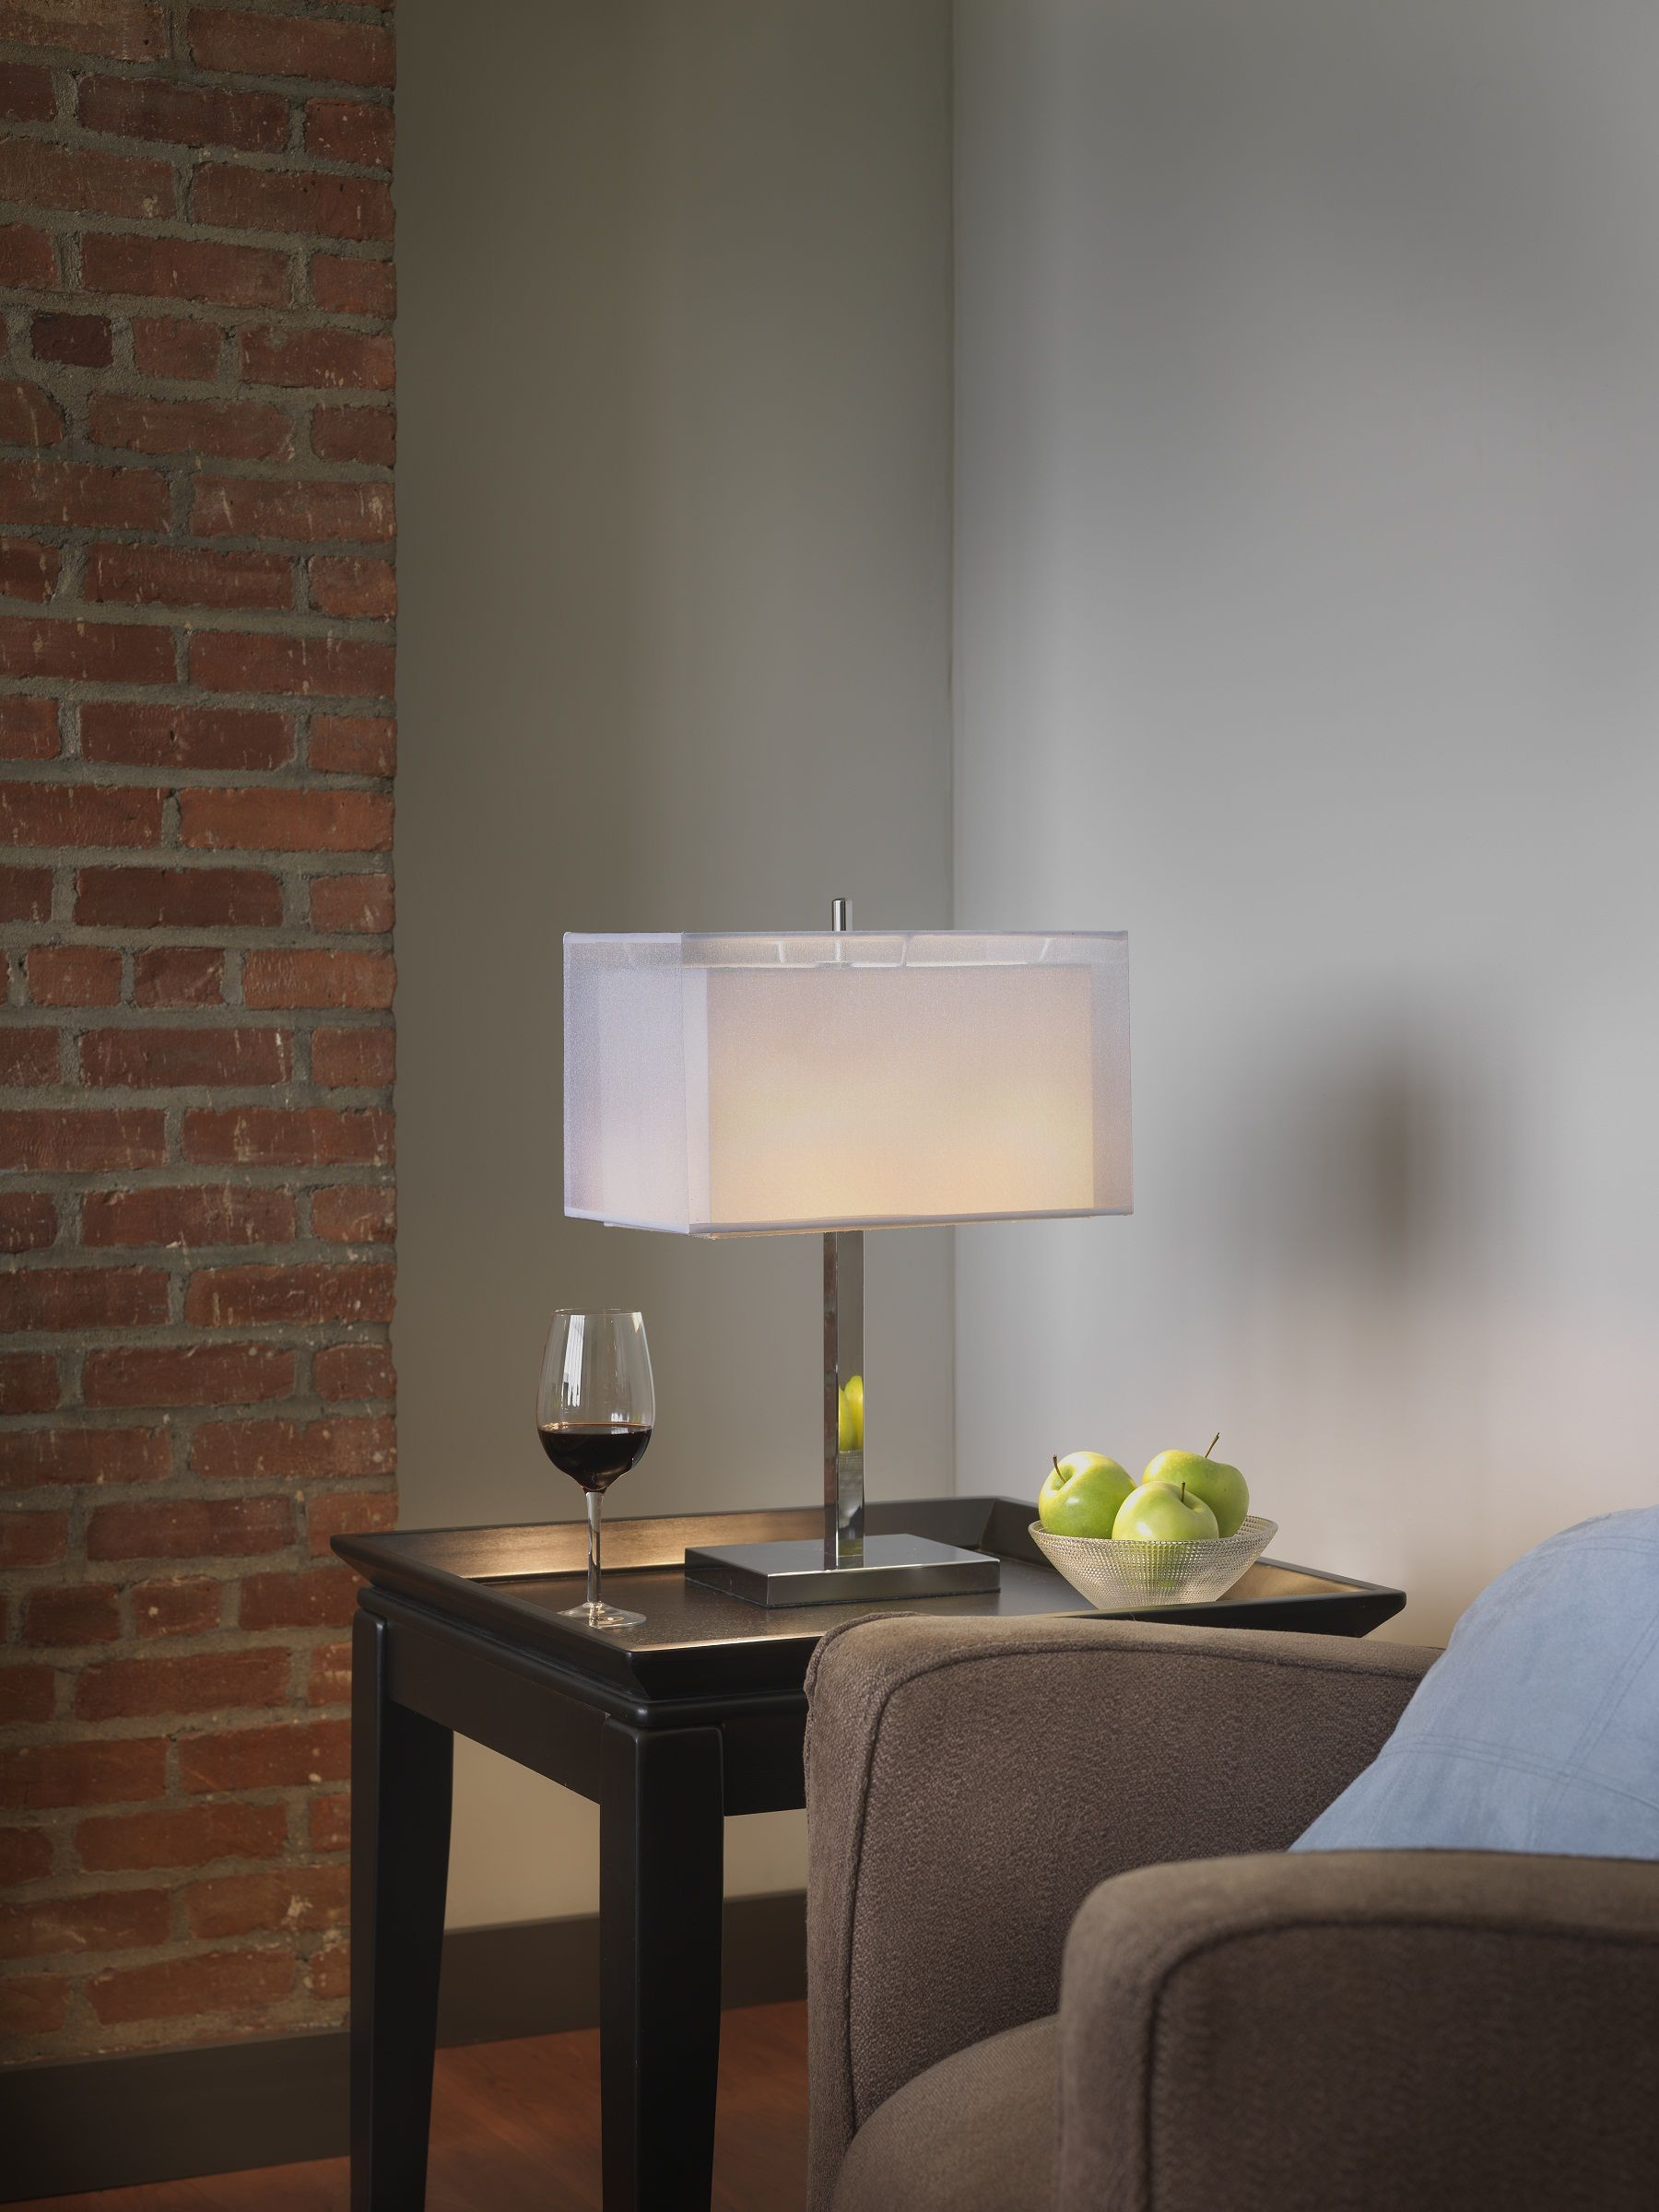 Sharper image table lamp white rectangle organza shade w chrome base si100013 189 00 available at selected retailers